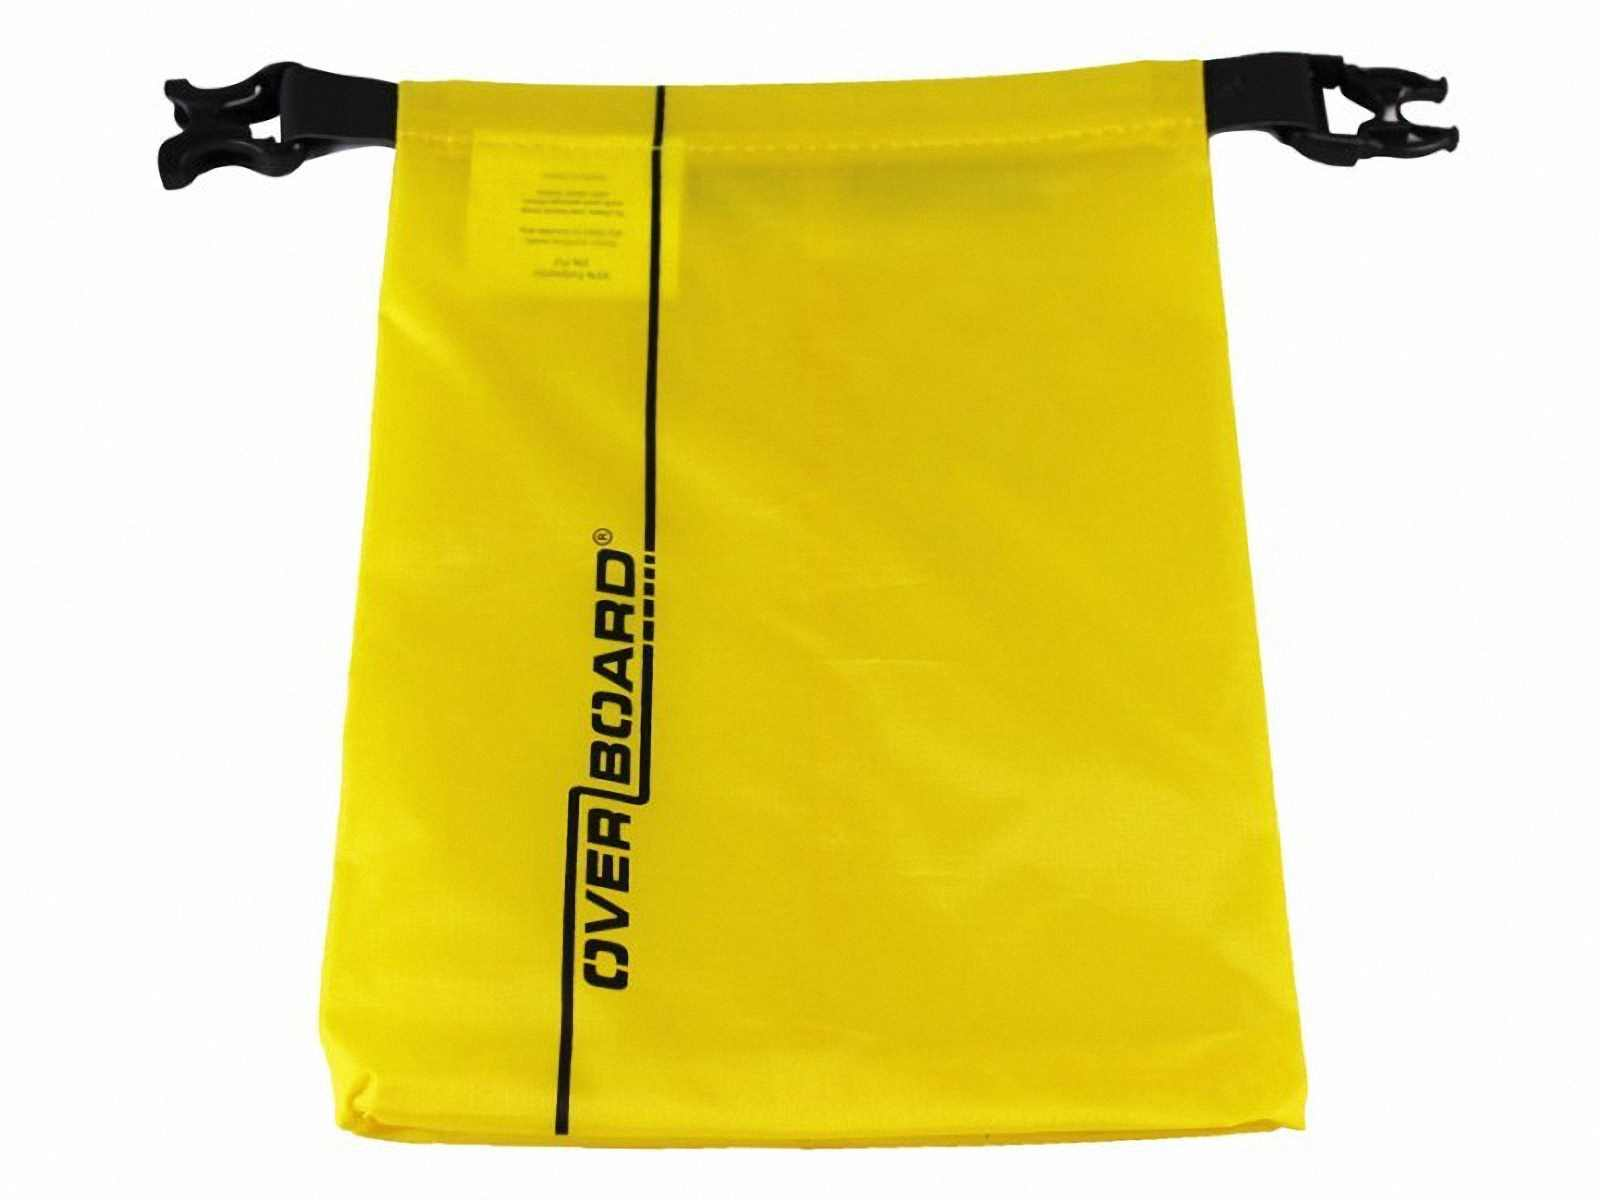 Водонепроницаемый гермомешок OverBoard OB1031Y - Waterproof Dry Pouch - 1 L. Фото 4